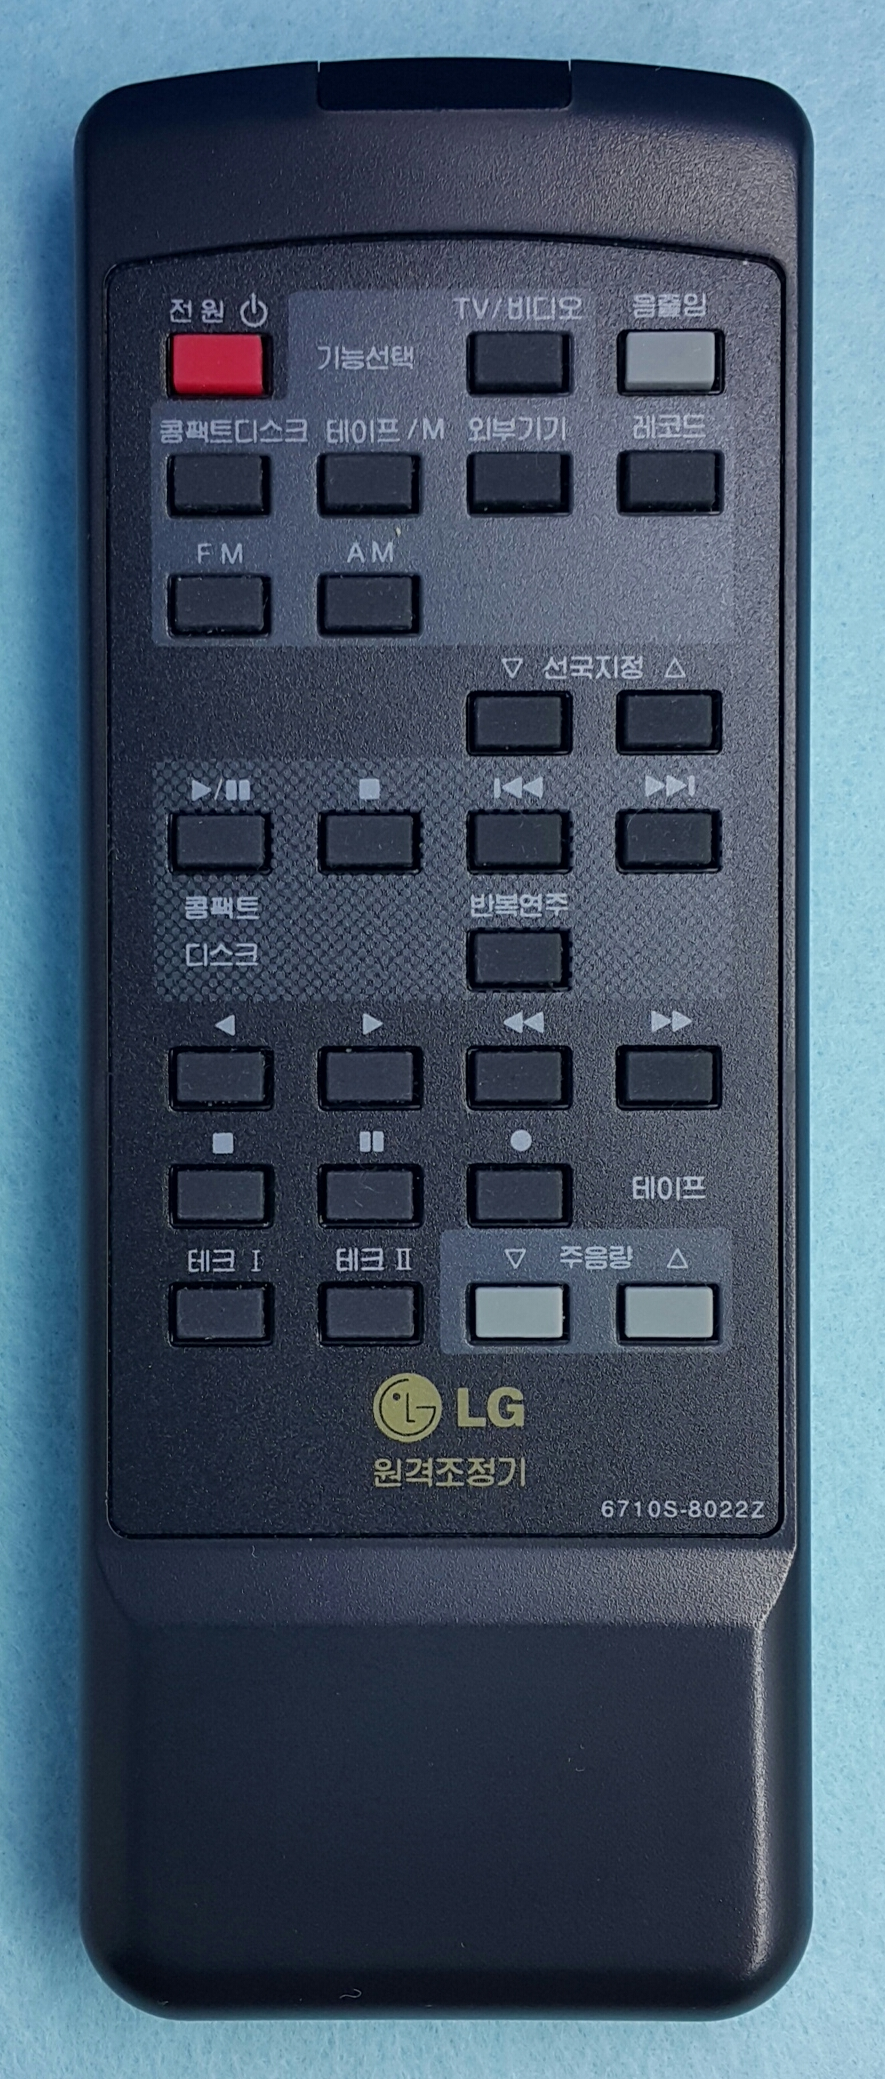 LG_6710S-8022Z_S0808 7887_AUDIO.LG_00001_cover.png